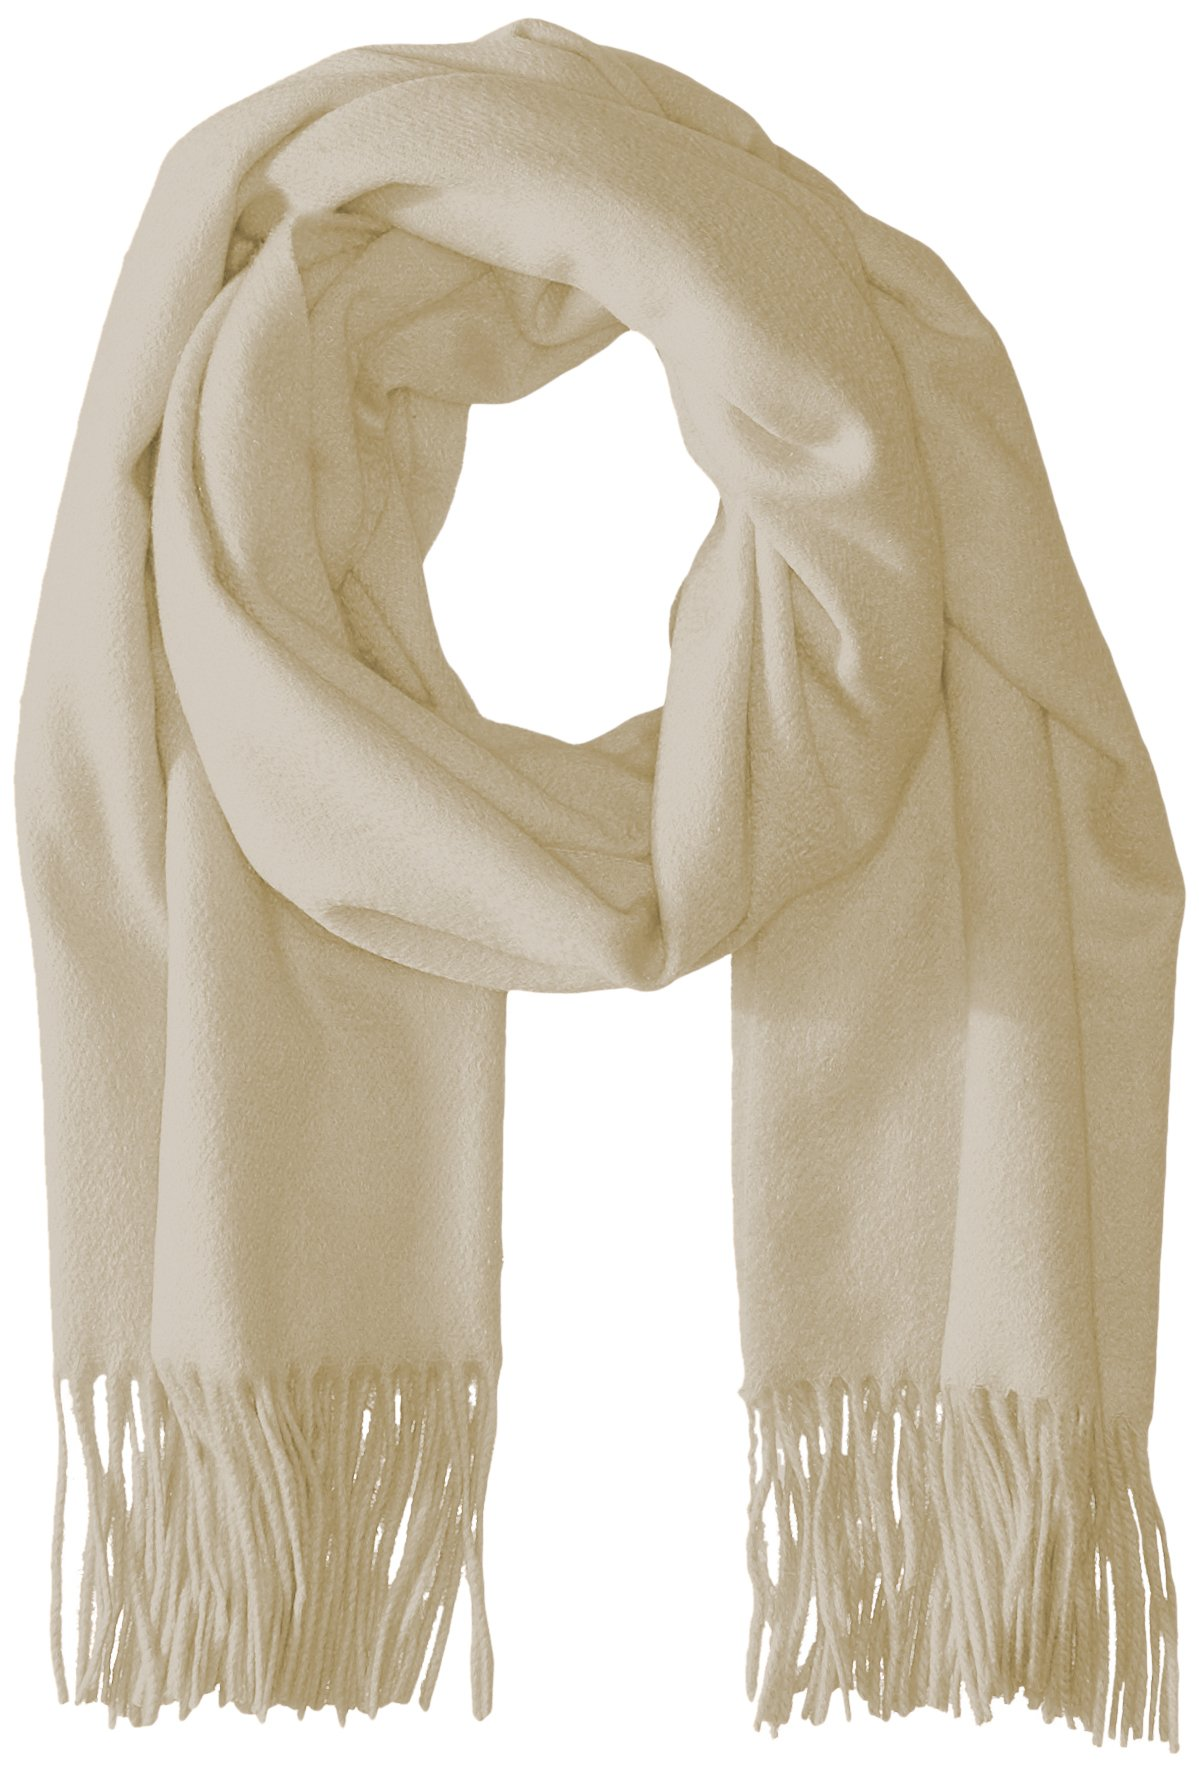 Sofia Cashmere Women's 100 Percent Cashmere Fringed Stole Scarf, Ivory, One Size by Sofia Cashmere